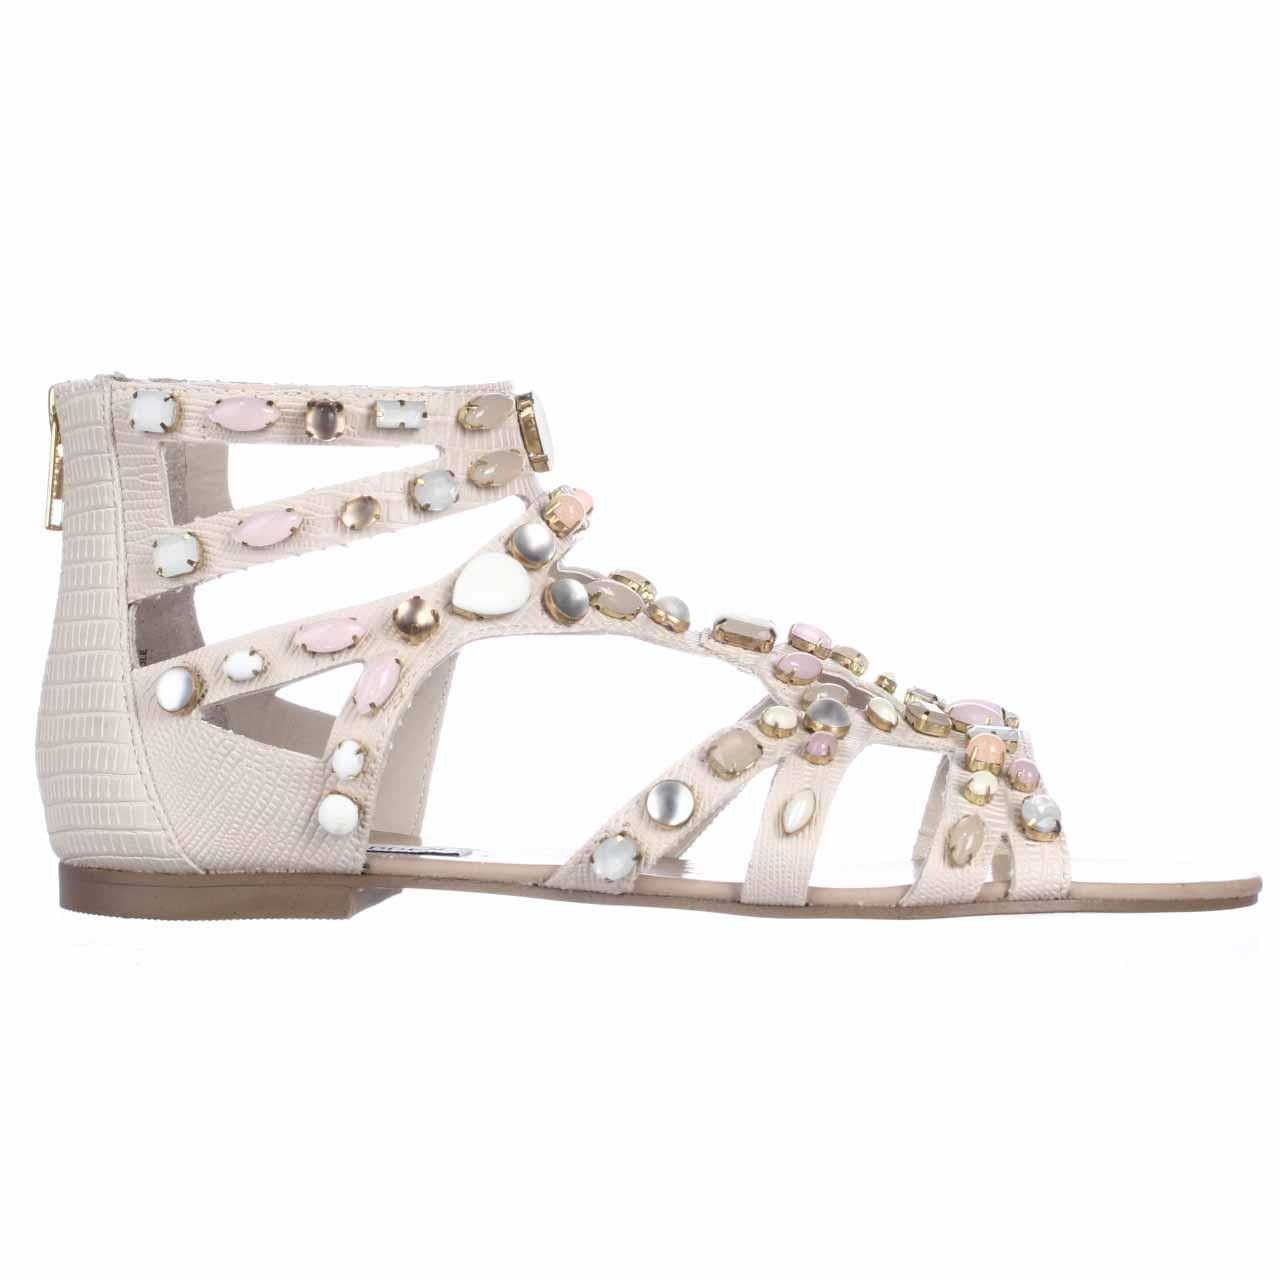 a982aa0c0bd Lyst - Steve Madden Culver Jeweled Gladiator Flat Sandals in White